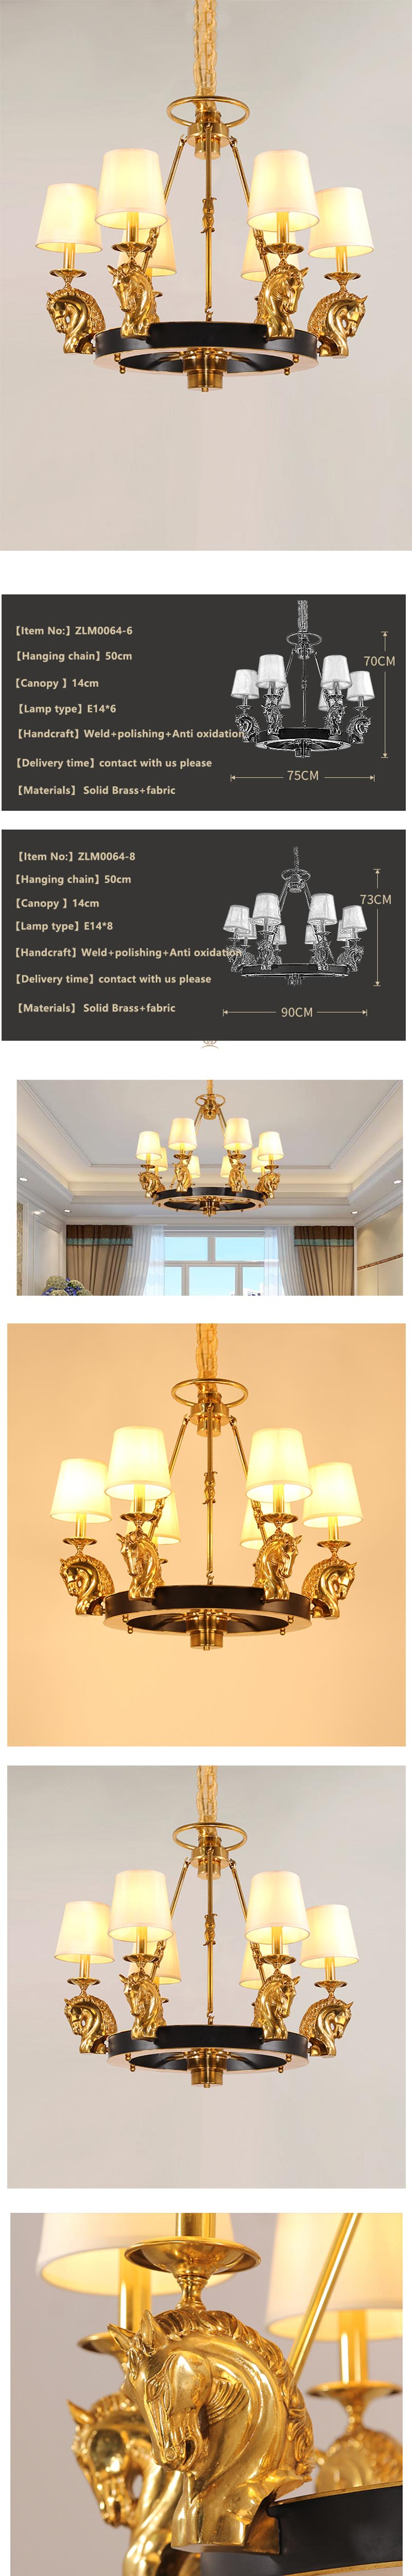 brass chandelier with shades